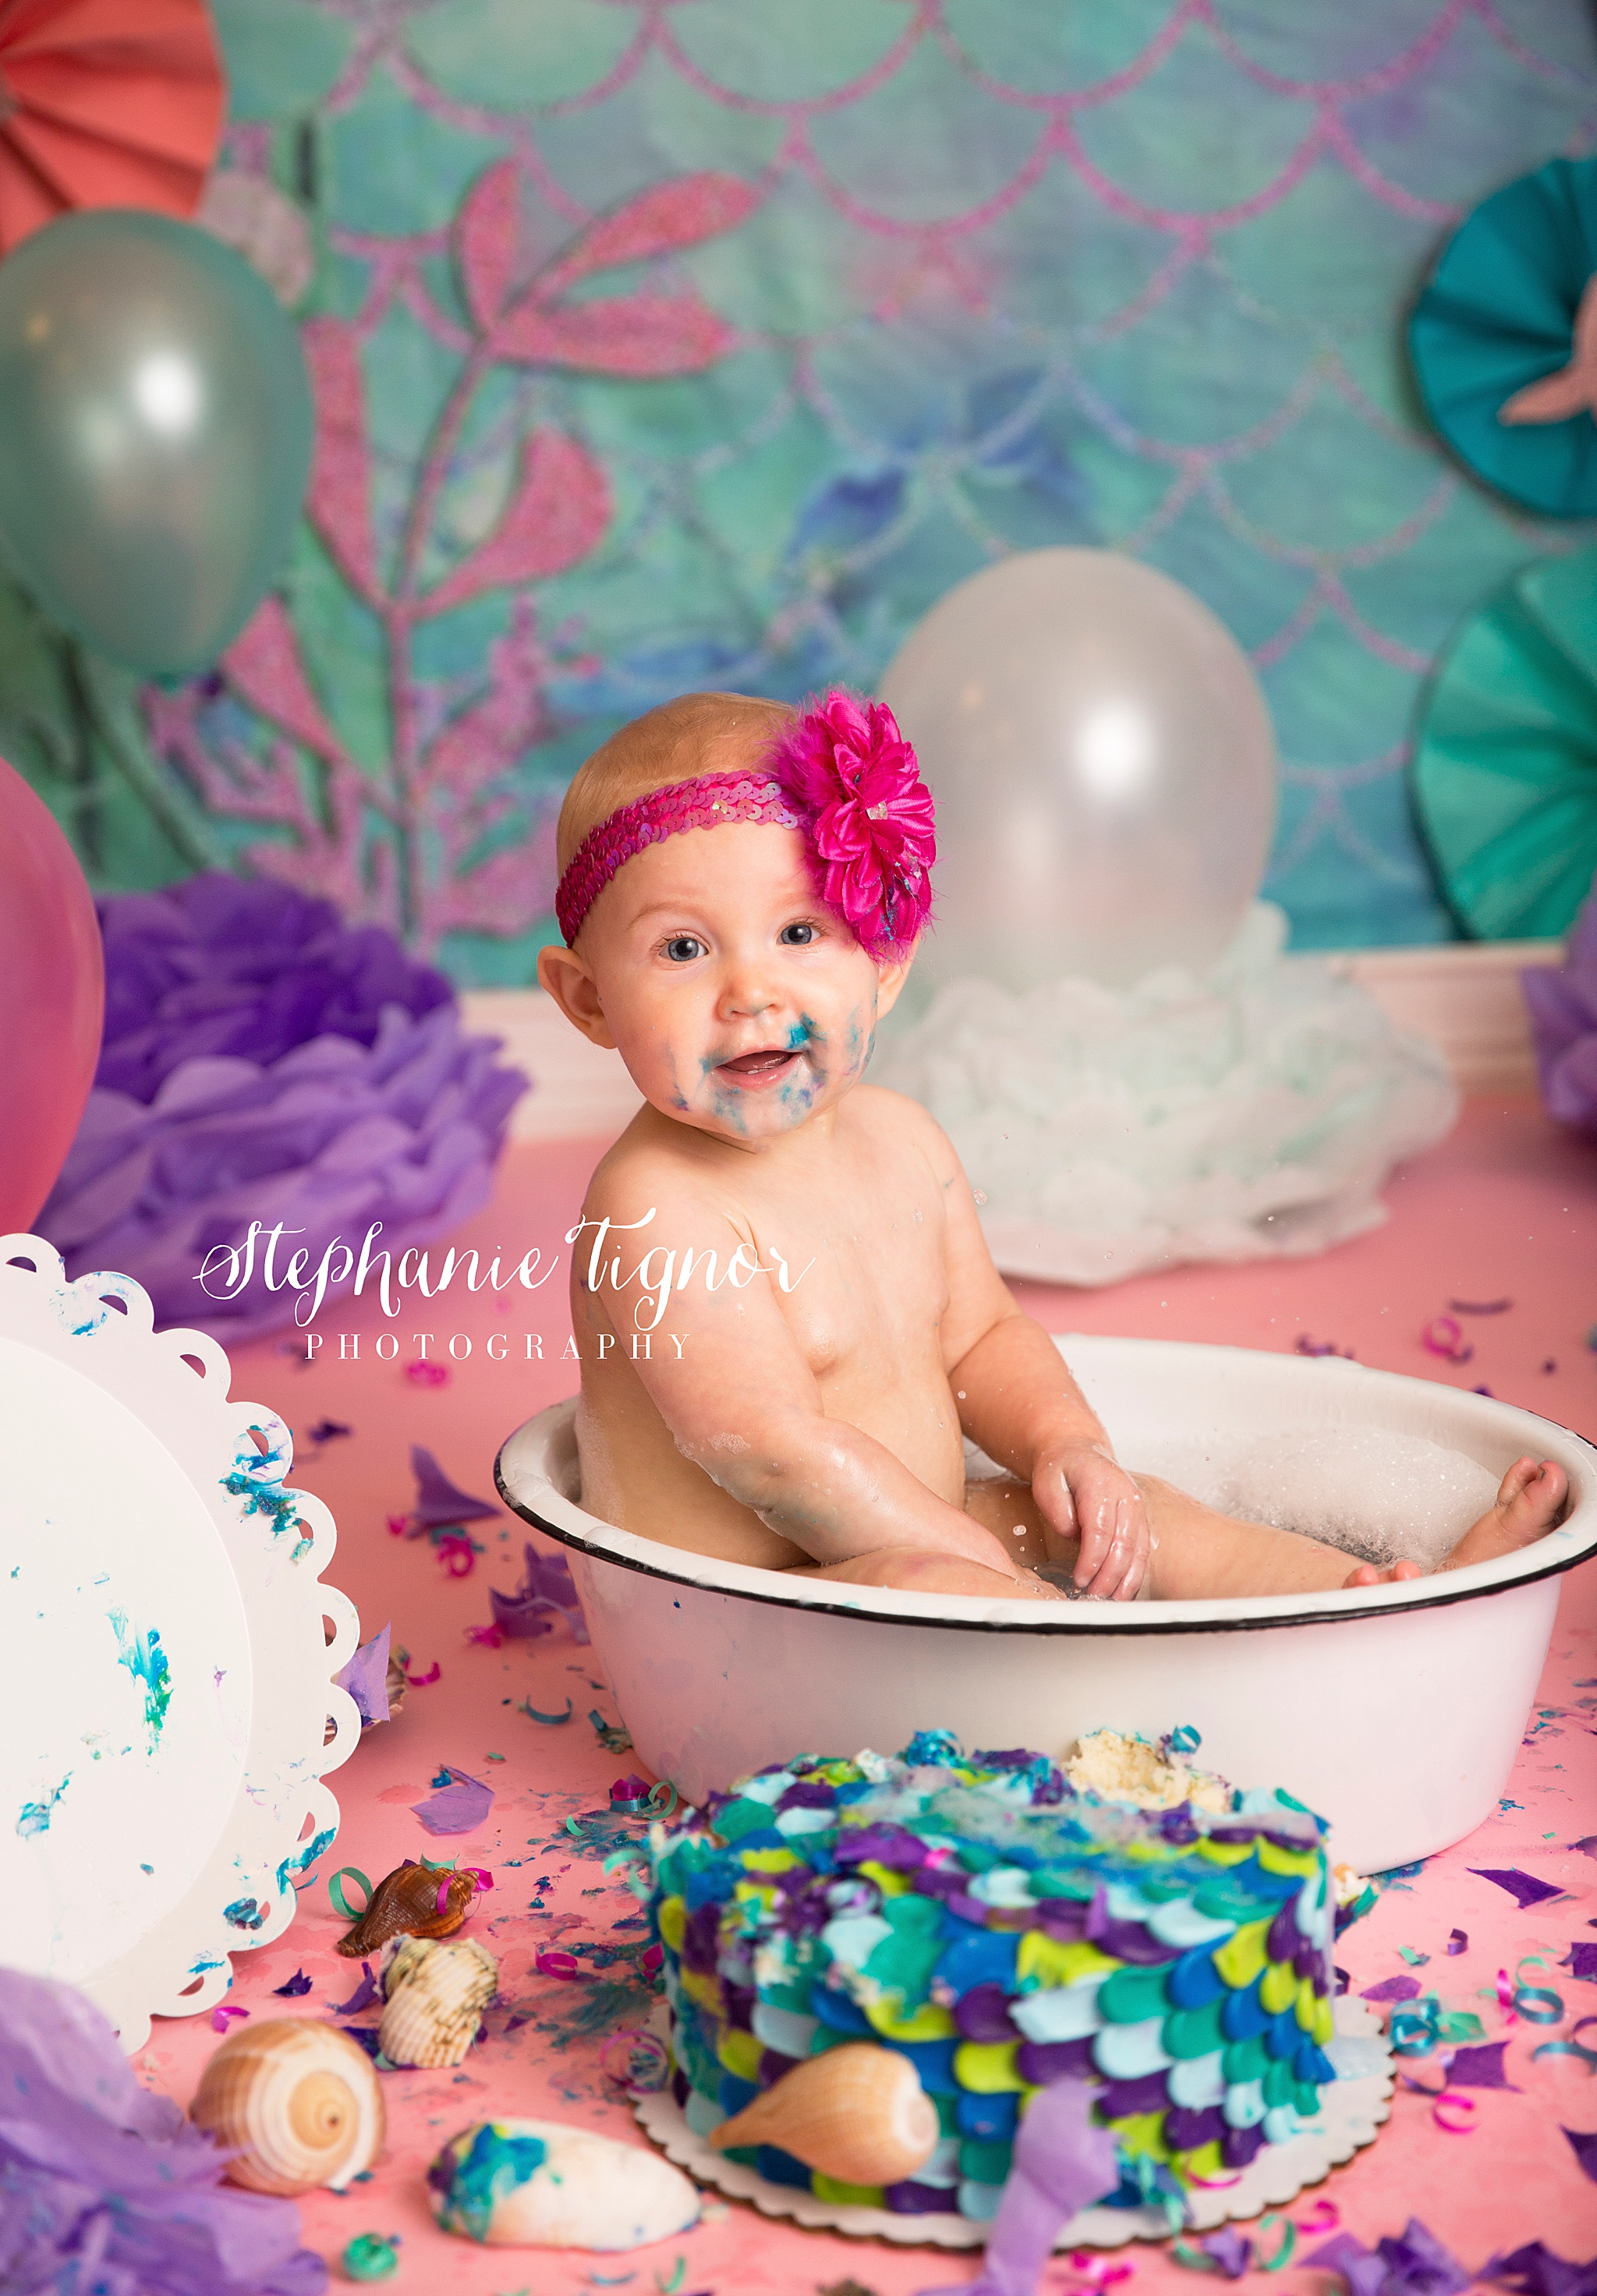 Stephanie Tignor Photography_Cake Smash_0094.jpg